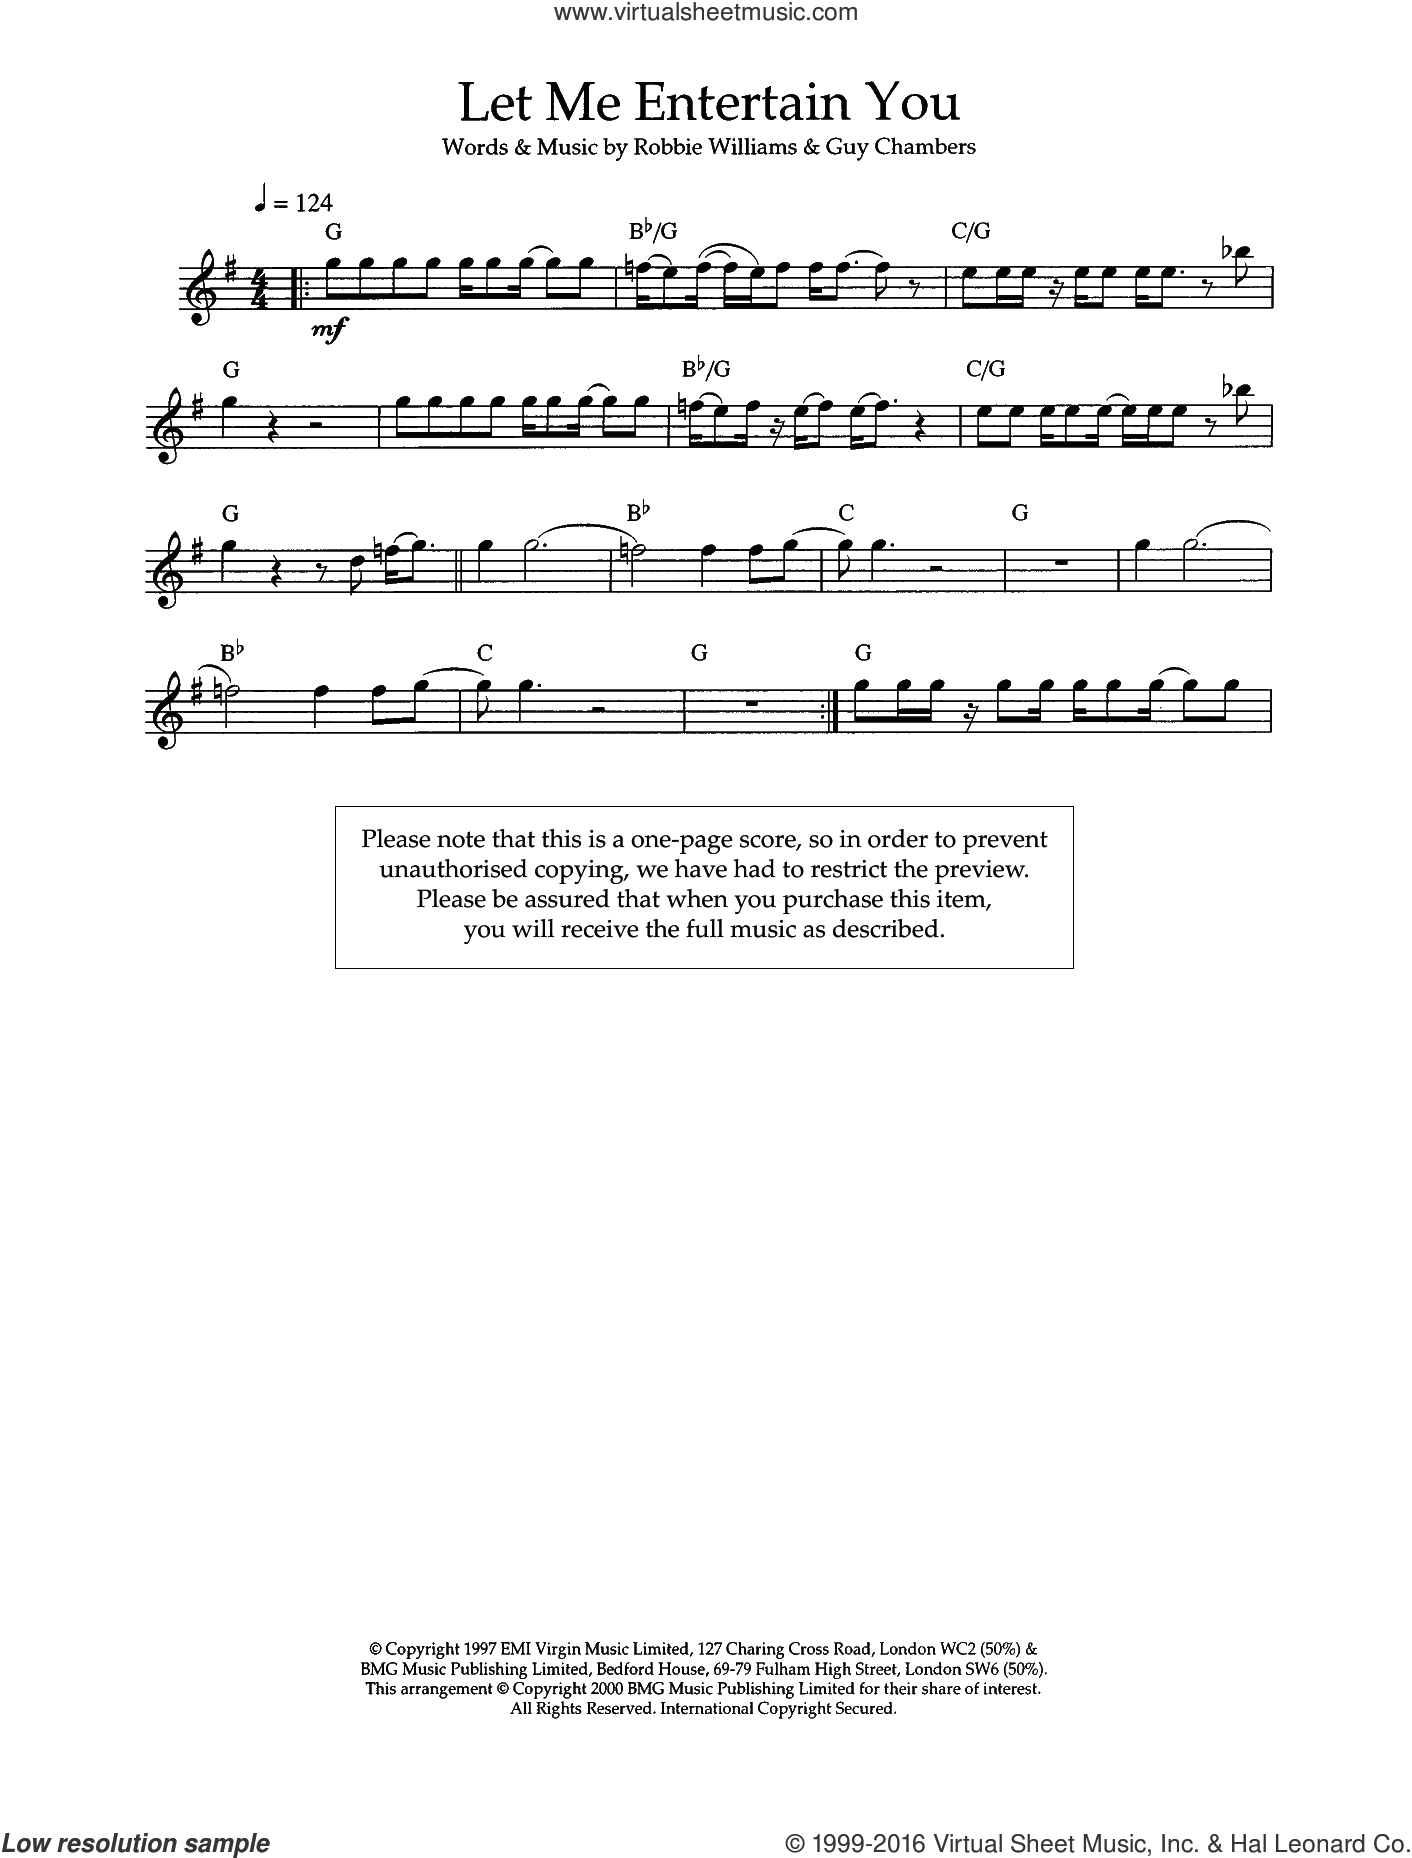 Let Me Entertain You sheet music for flute solo by Robbie Williams and Guy Chambers, intermediate skill level